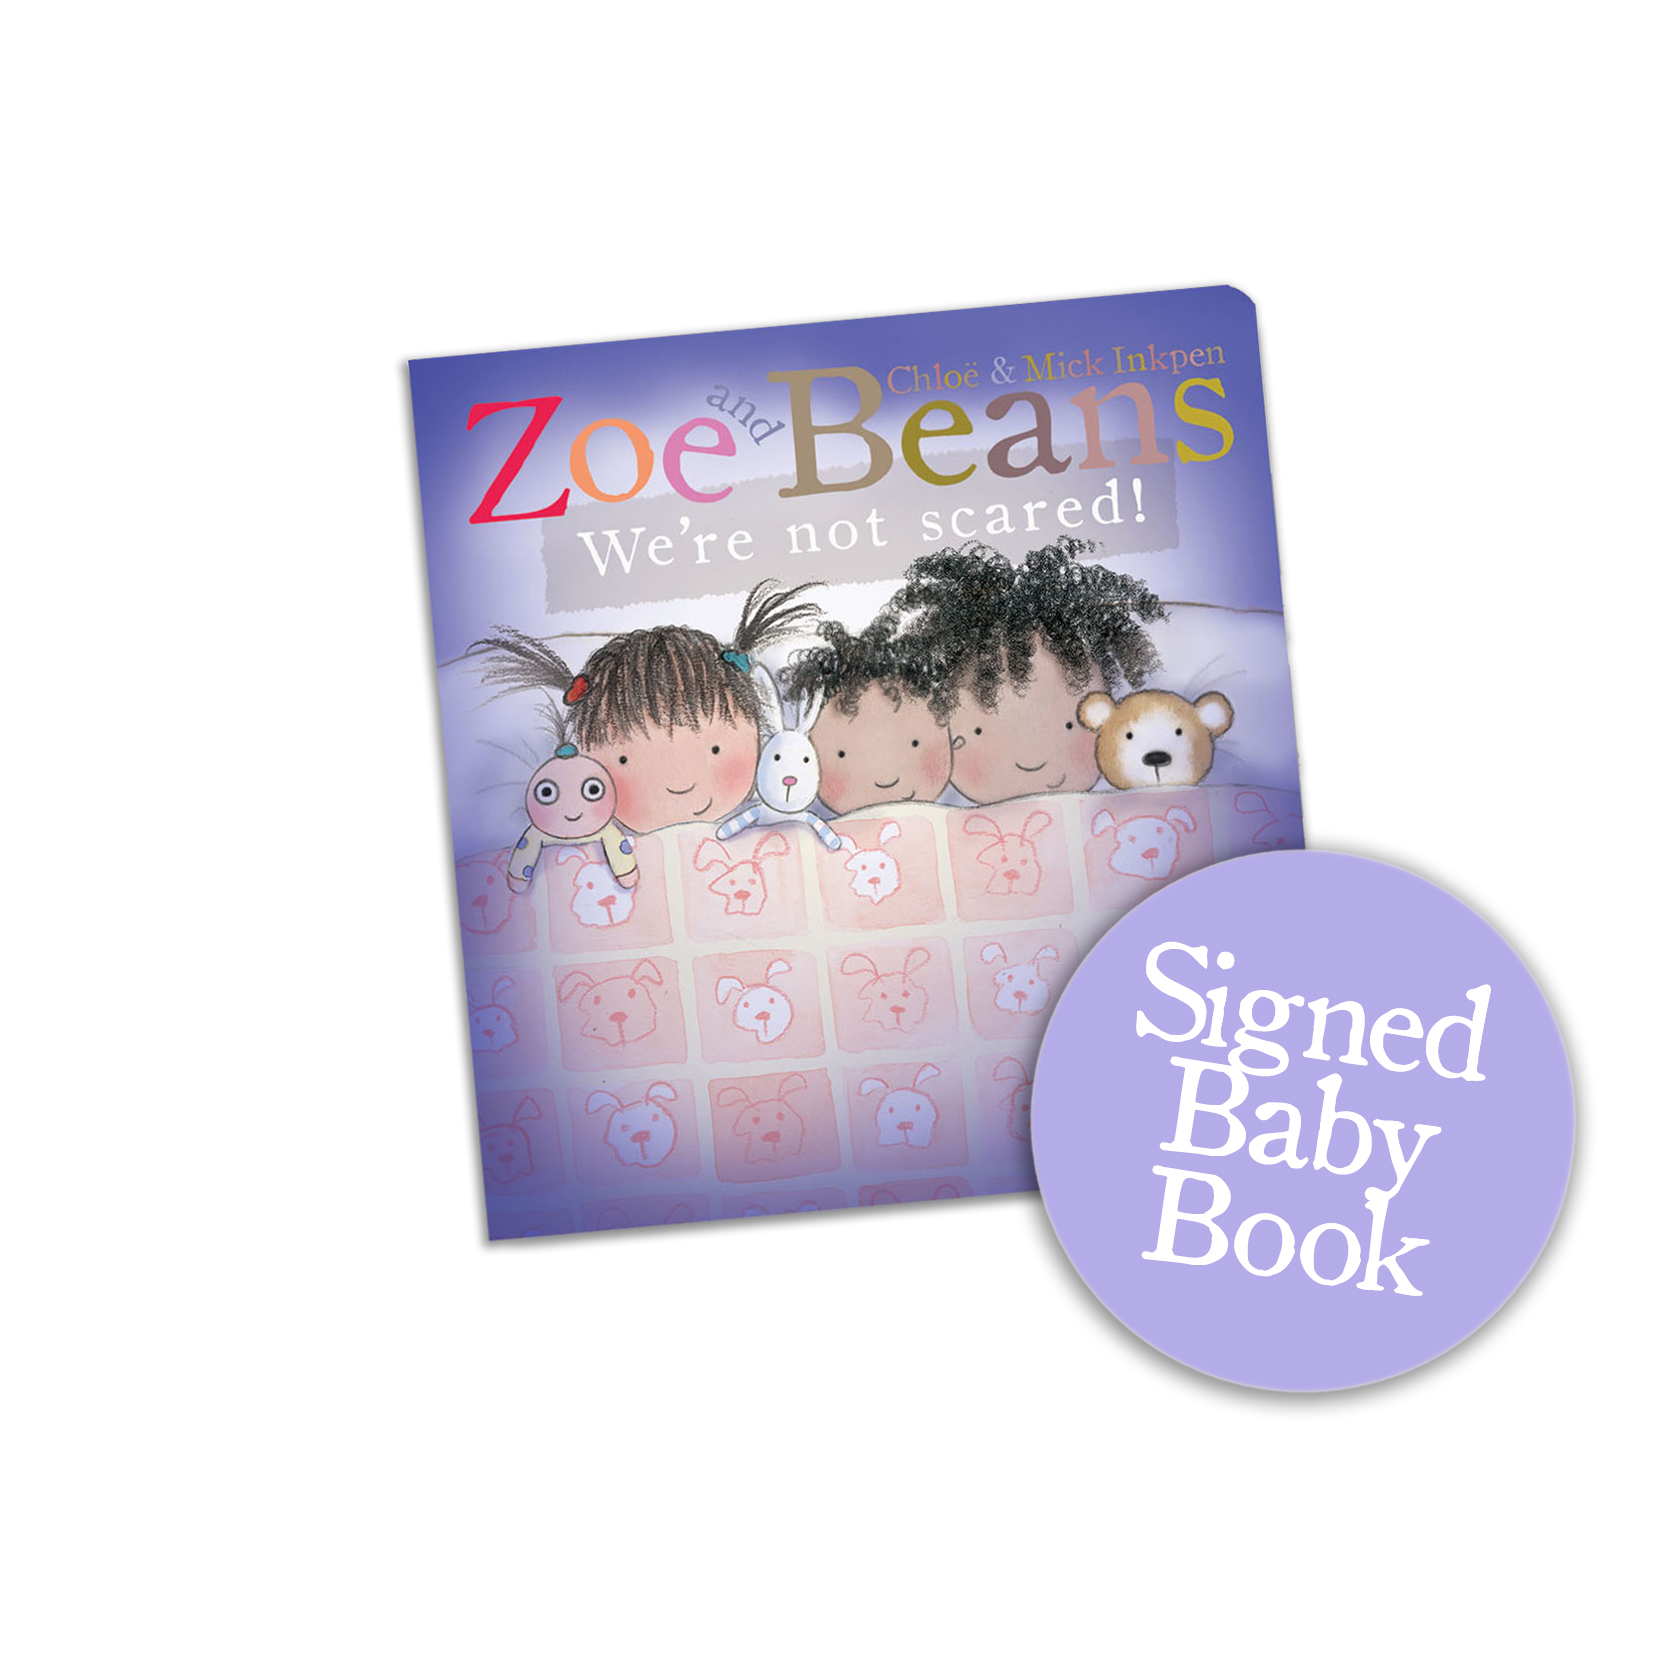 WNS signed baby book.jpg